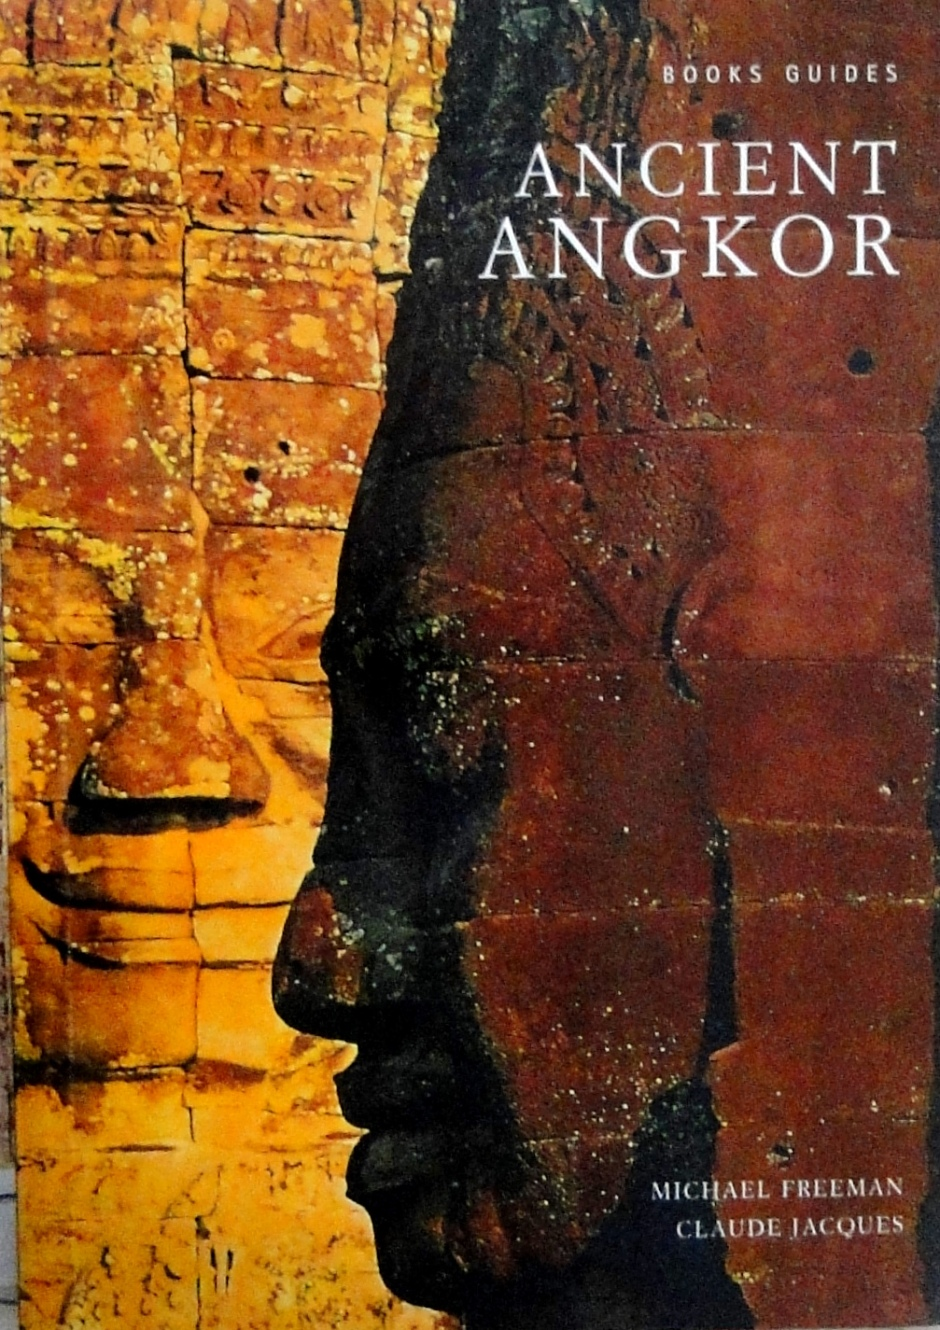 Ancient Angkor, book guide by Michael Freeman and Claude Jacques